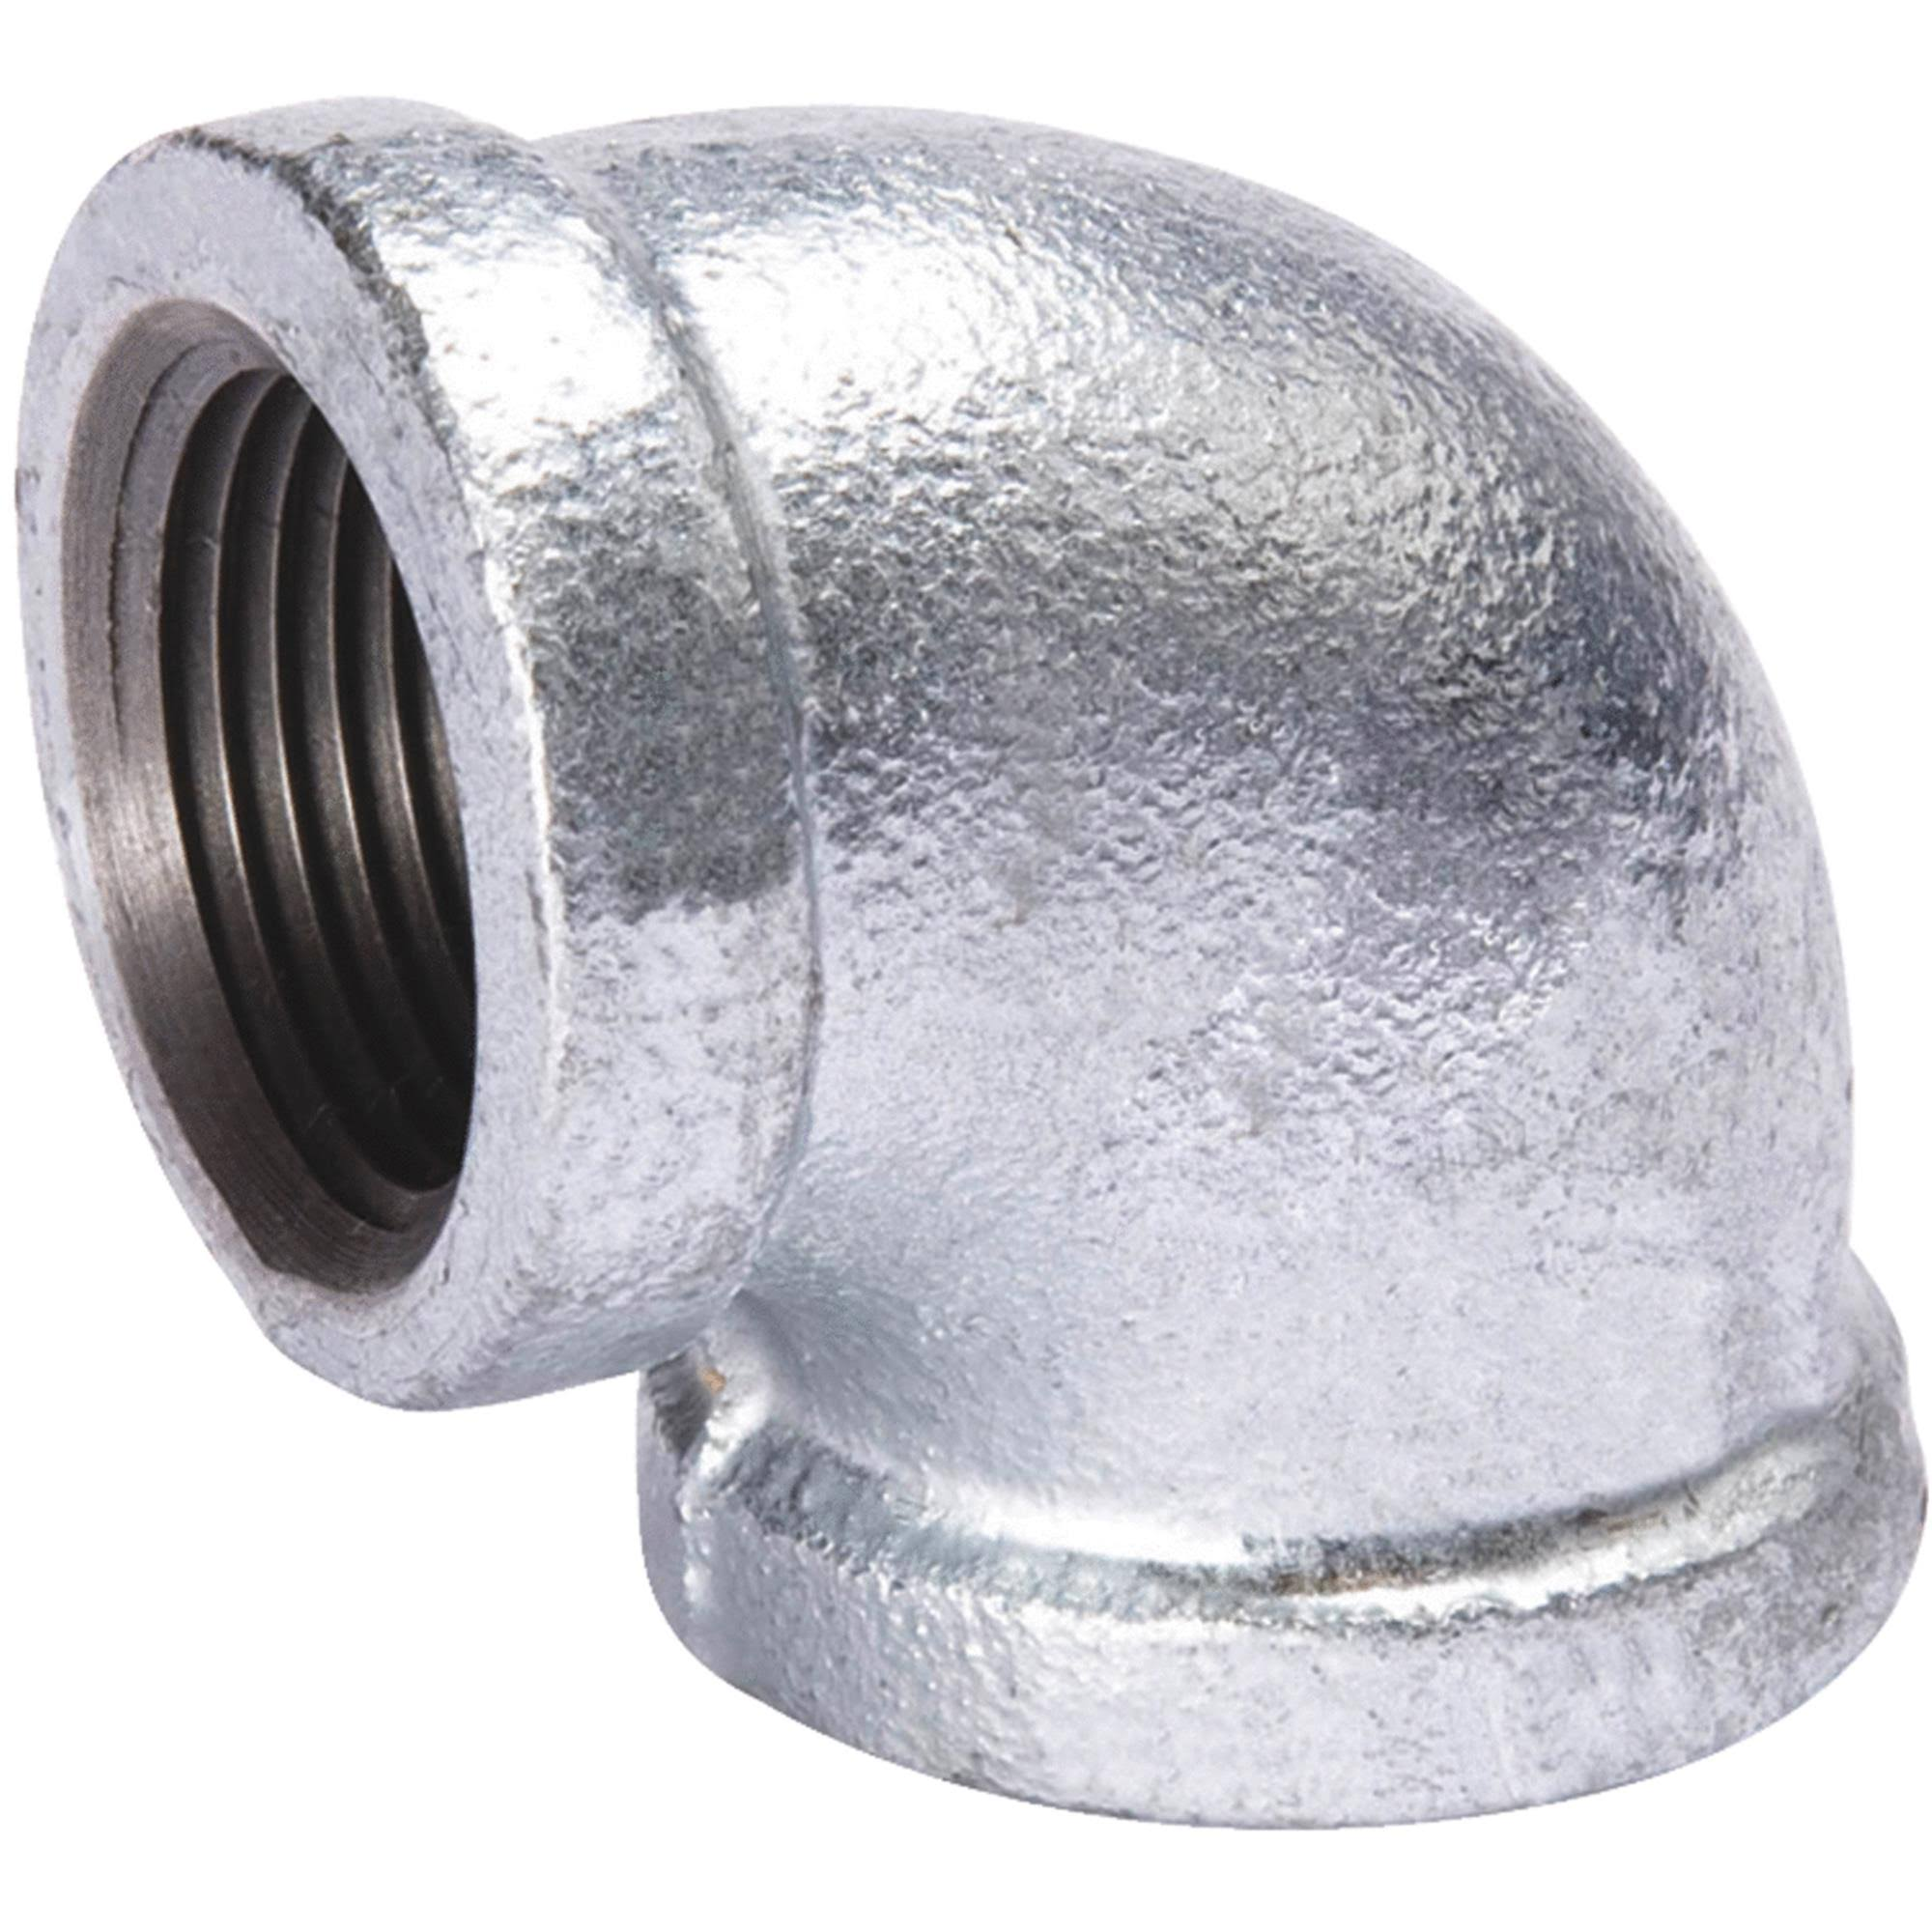 Southland 510 007hn Galvanized 90 Degree Elbow Fittings - 1 1/2""